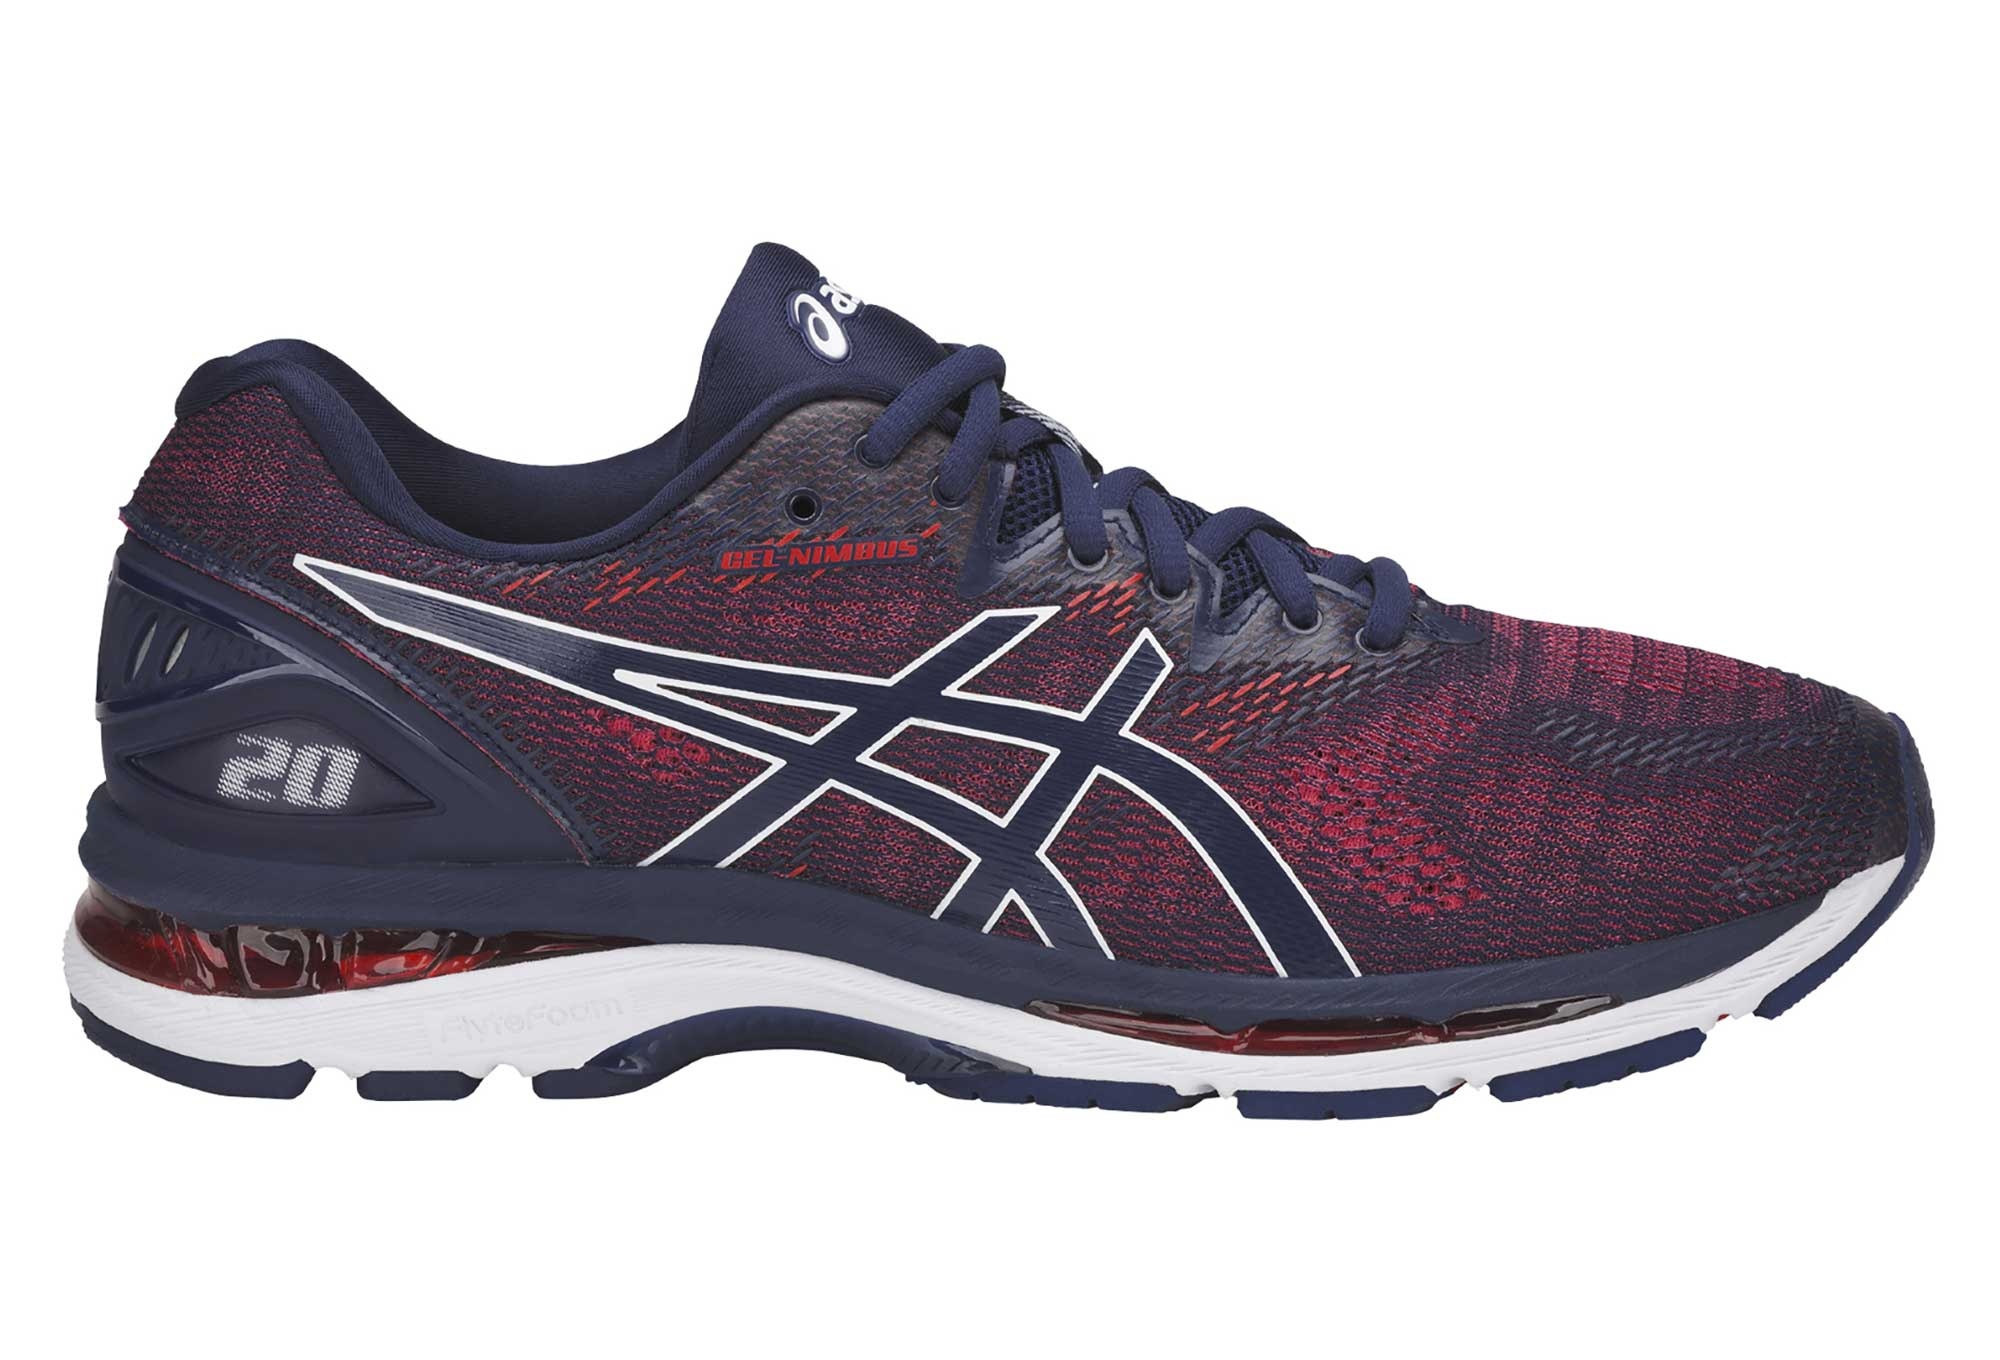 chaussures de running asics gel nimbus 20 bleu rouge. Black Bedroom Furniture Sets. Home Design Ideas